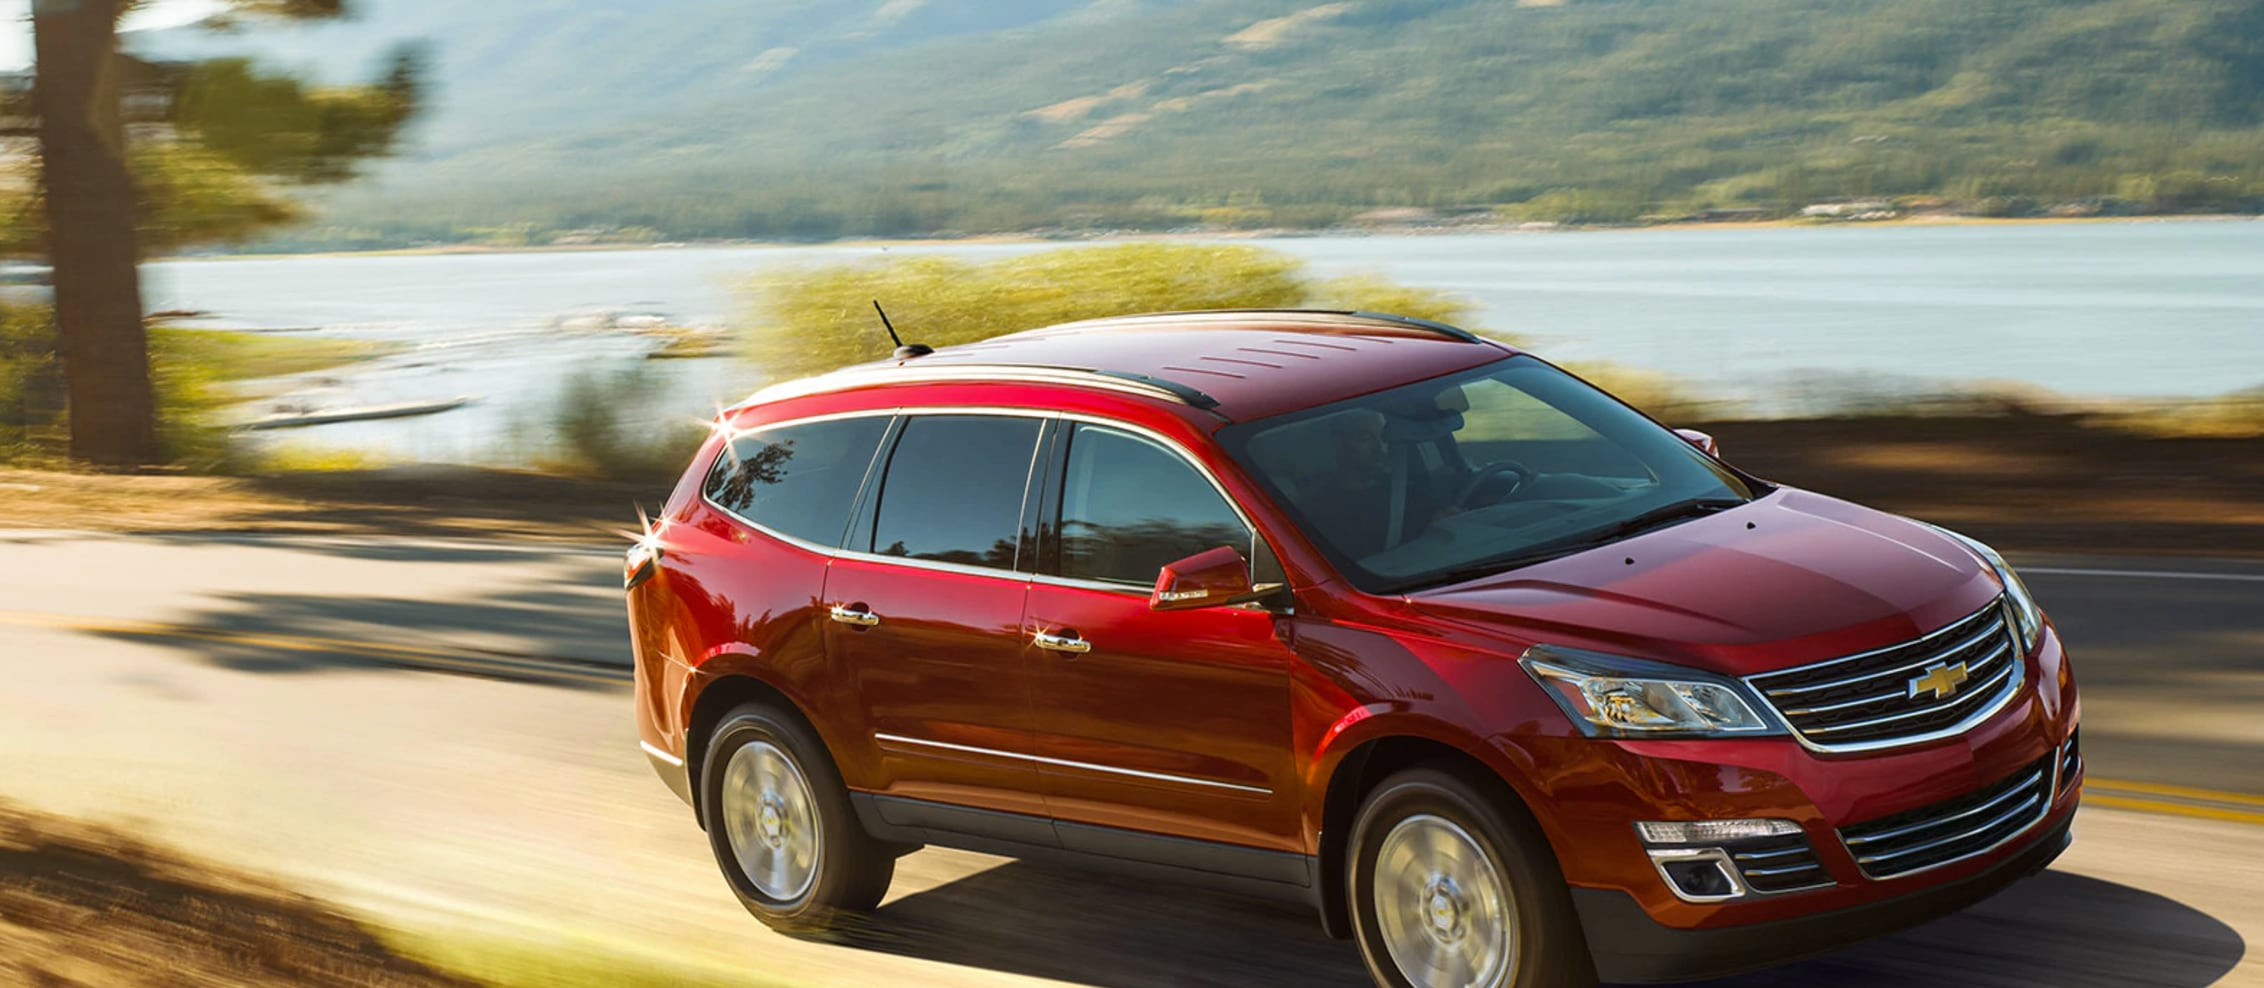 2017 Chevrolet Traverse For Sale In Norman, Oklahoma | Landers Chevrolet Of  Norman